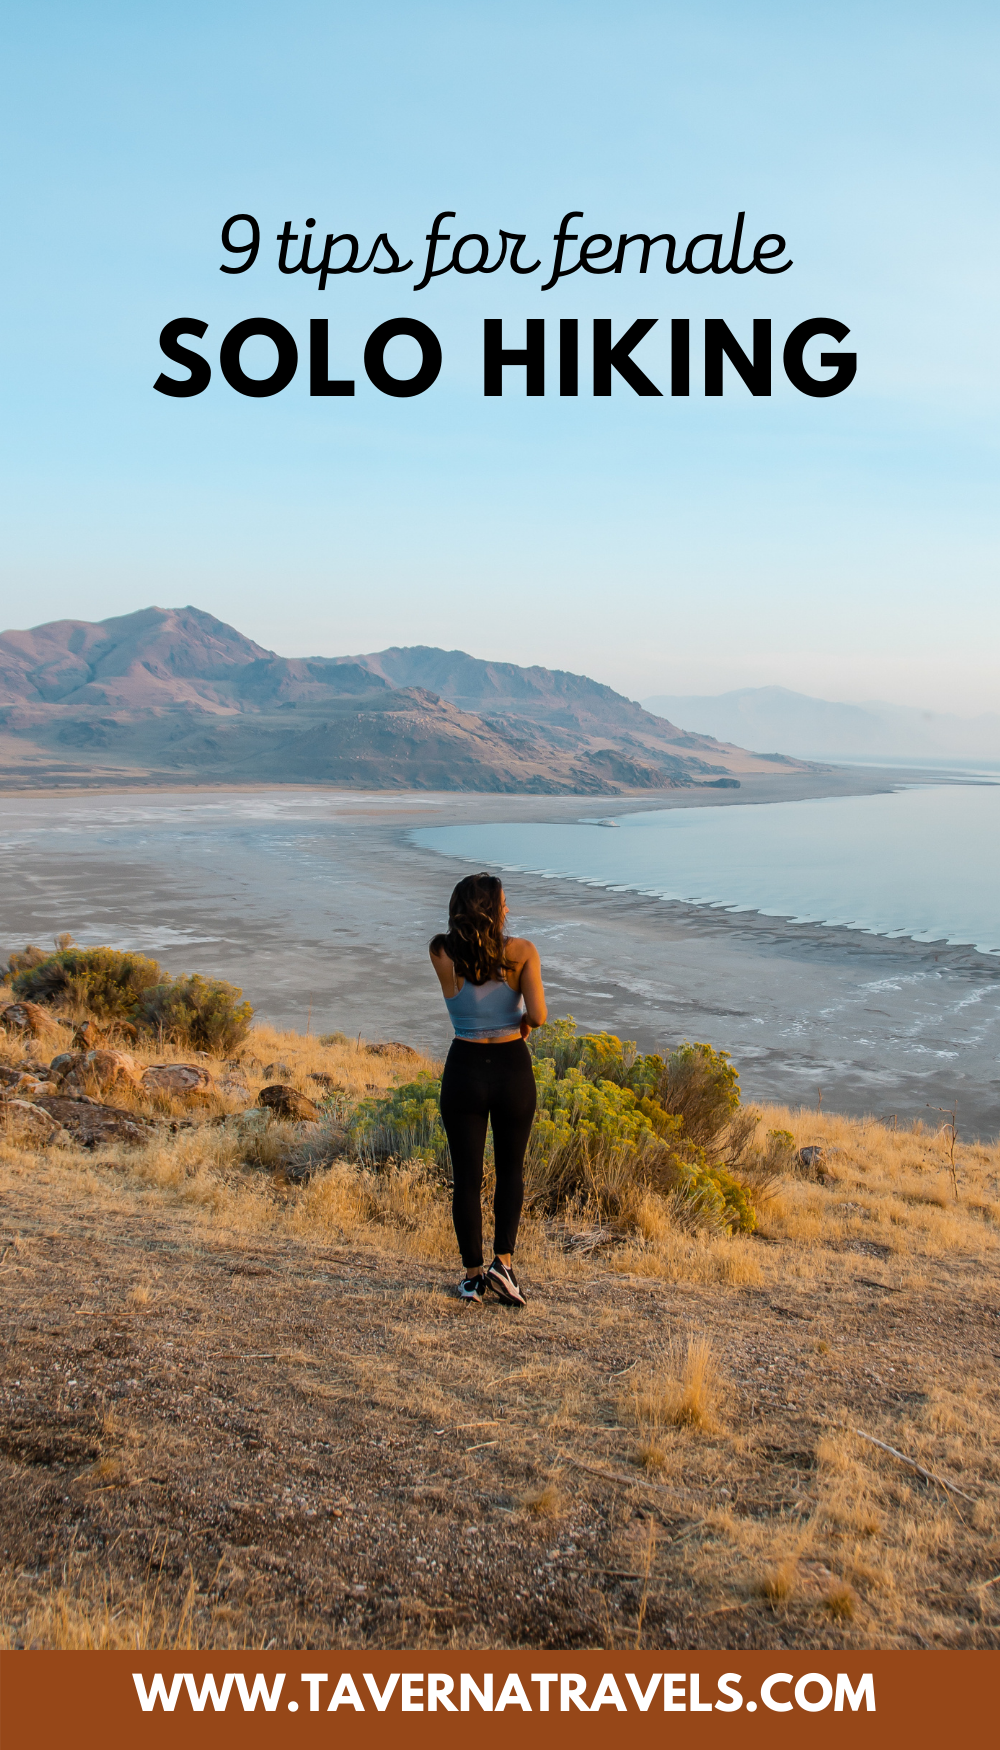 Solo Hiking: 9 Hiking Tips for Female Travelers pin